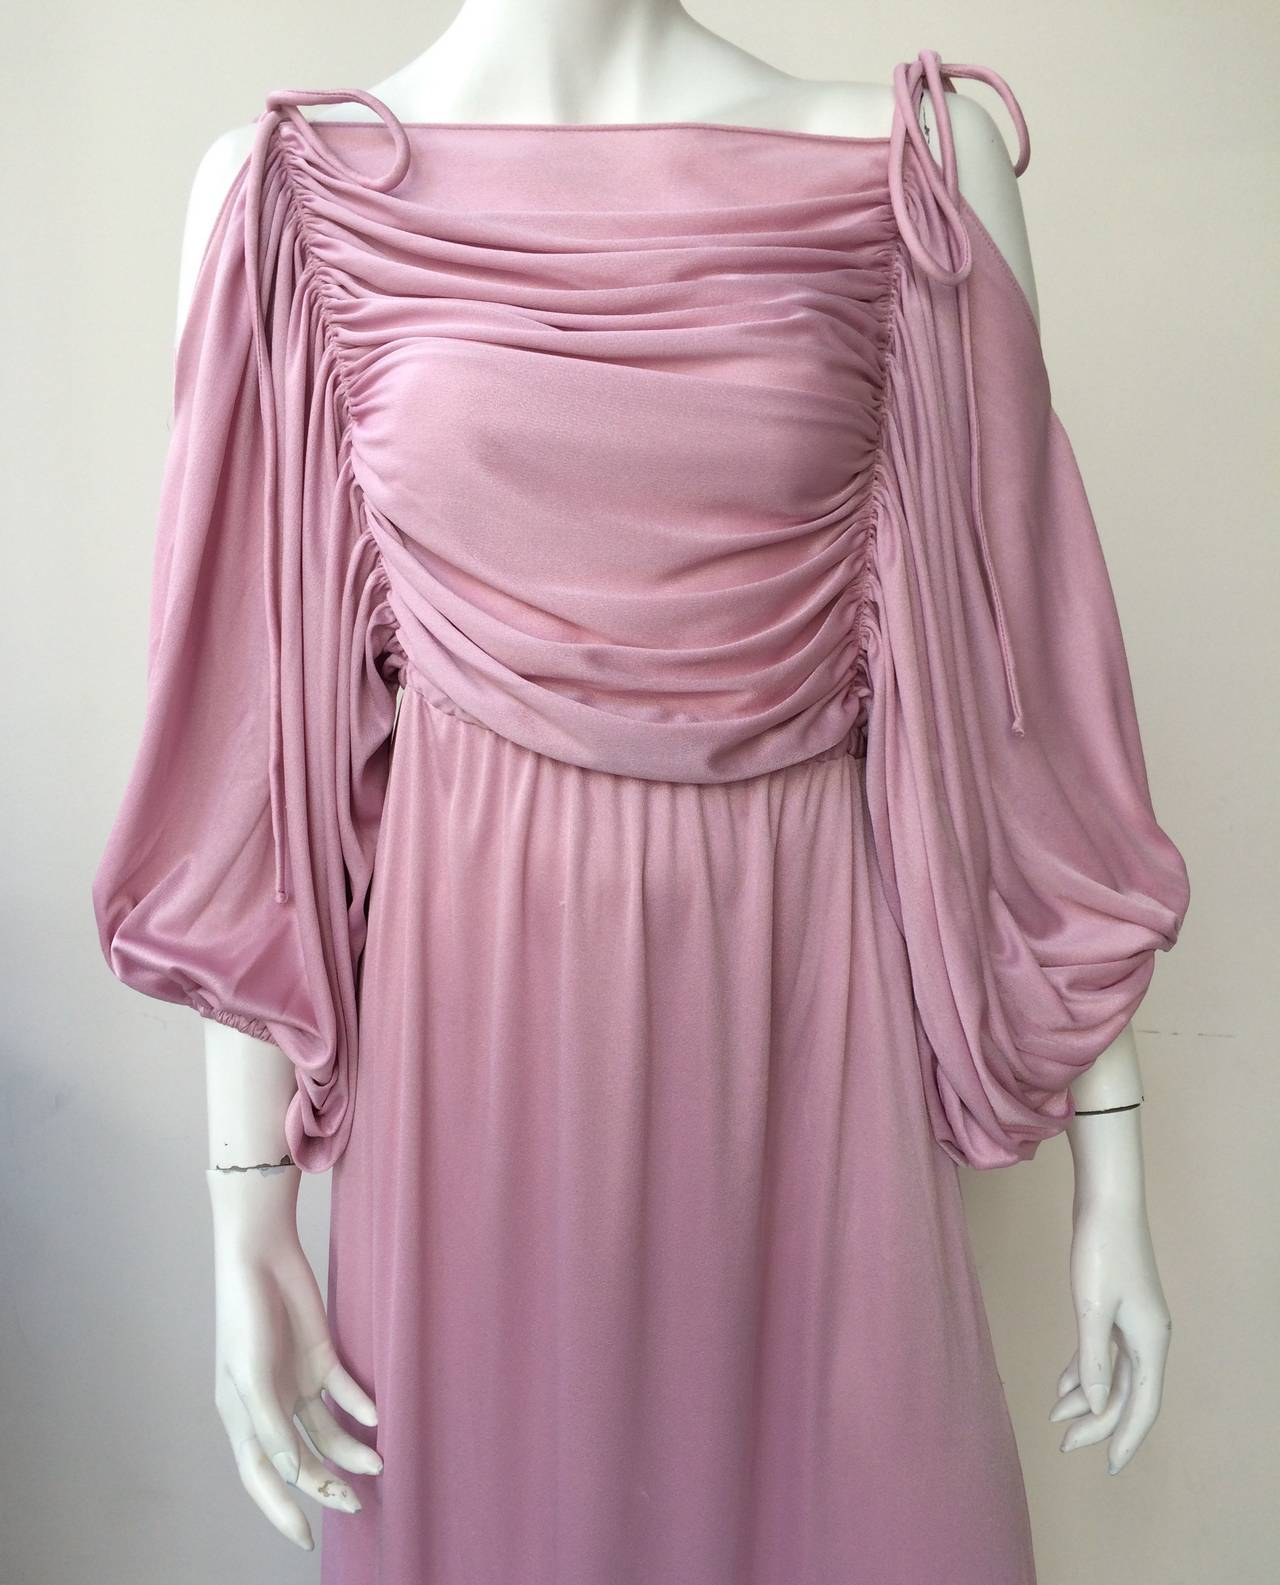 Joy Stevens 70s ruched spagetti straps gown. 2